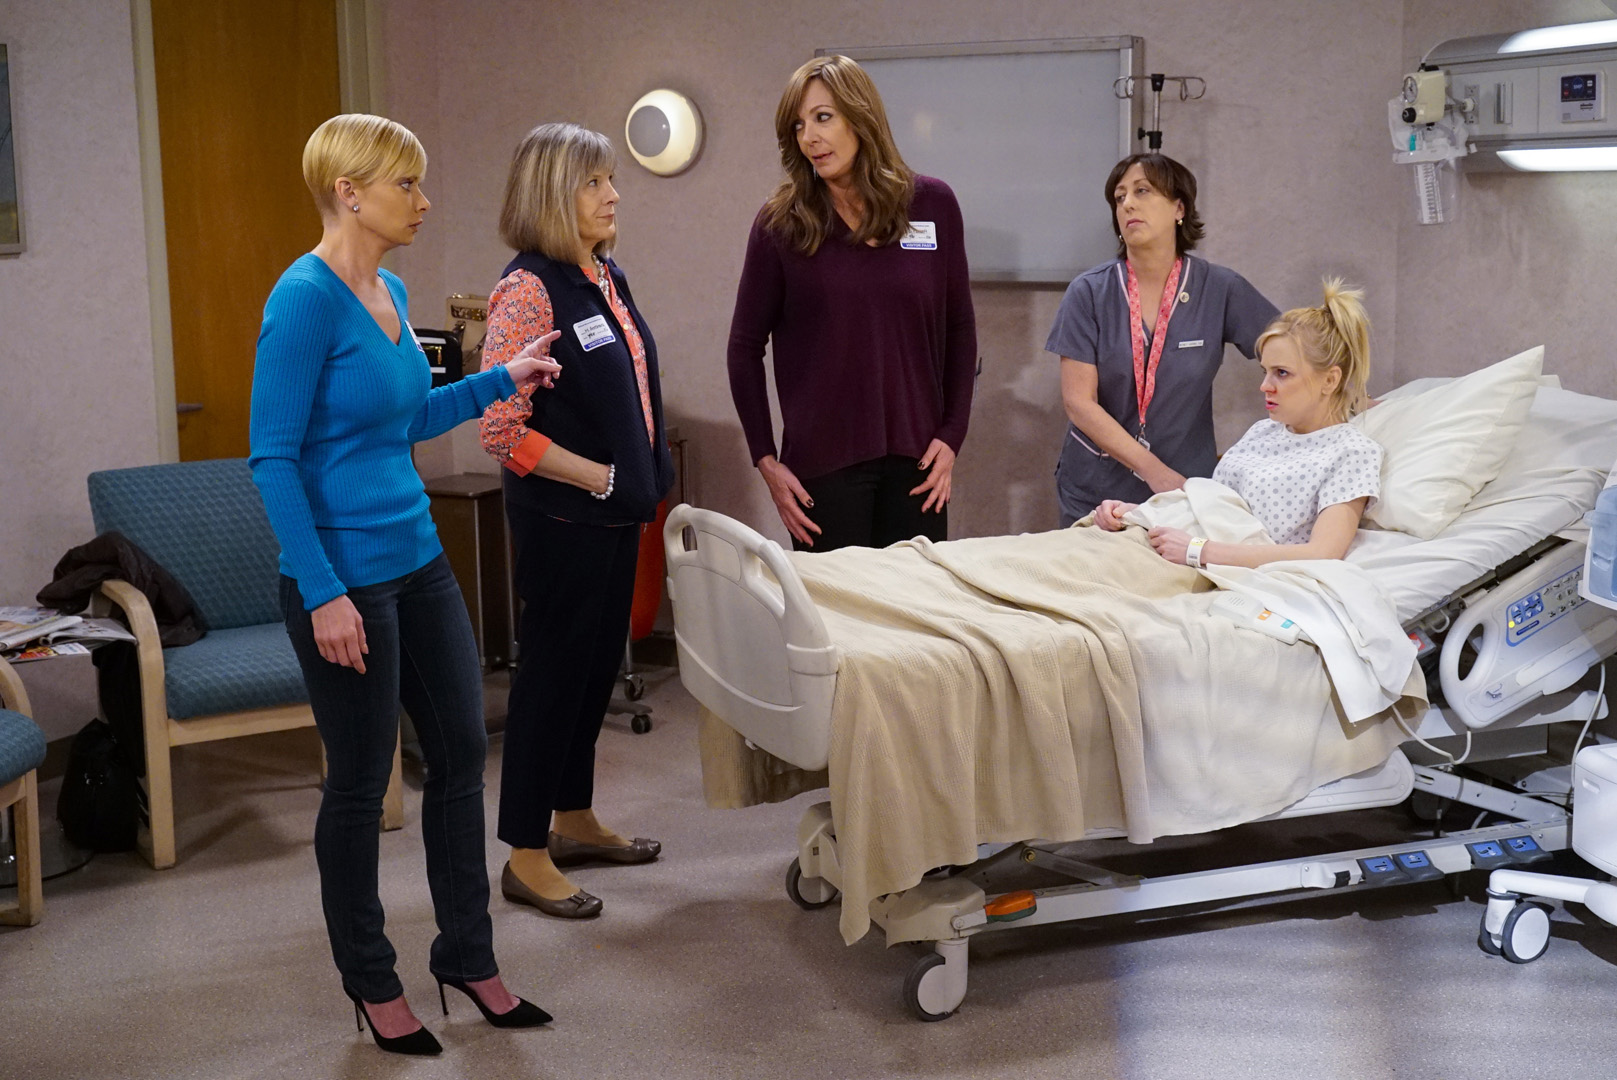 While gathered around Christy's bedside, Bonnie asks her crew for some relationship advice.